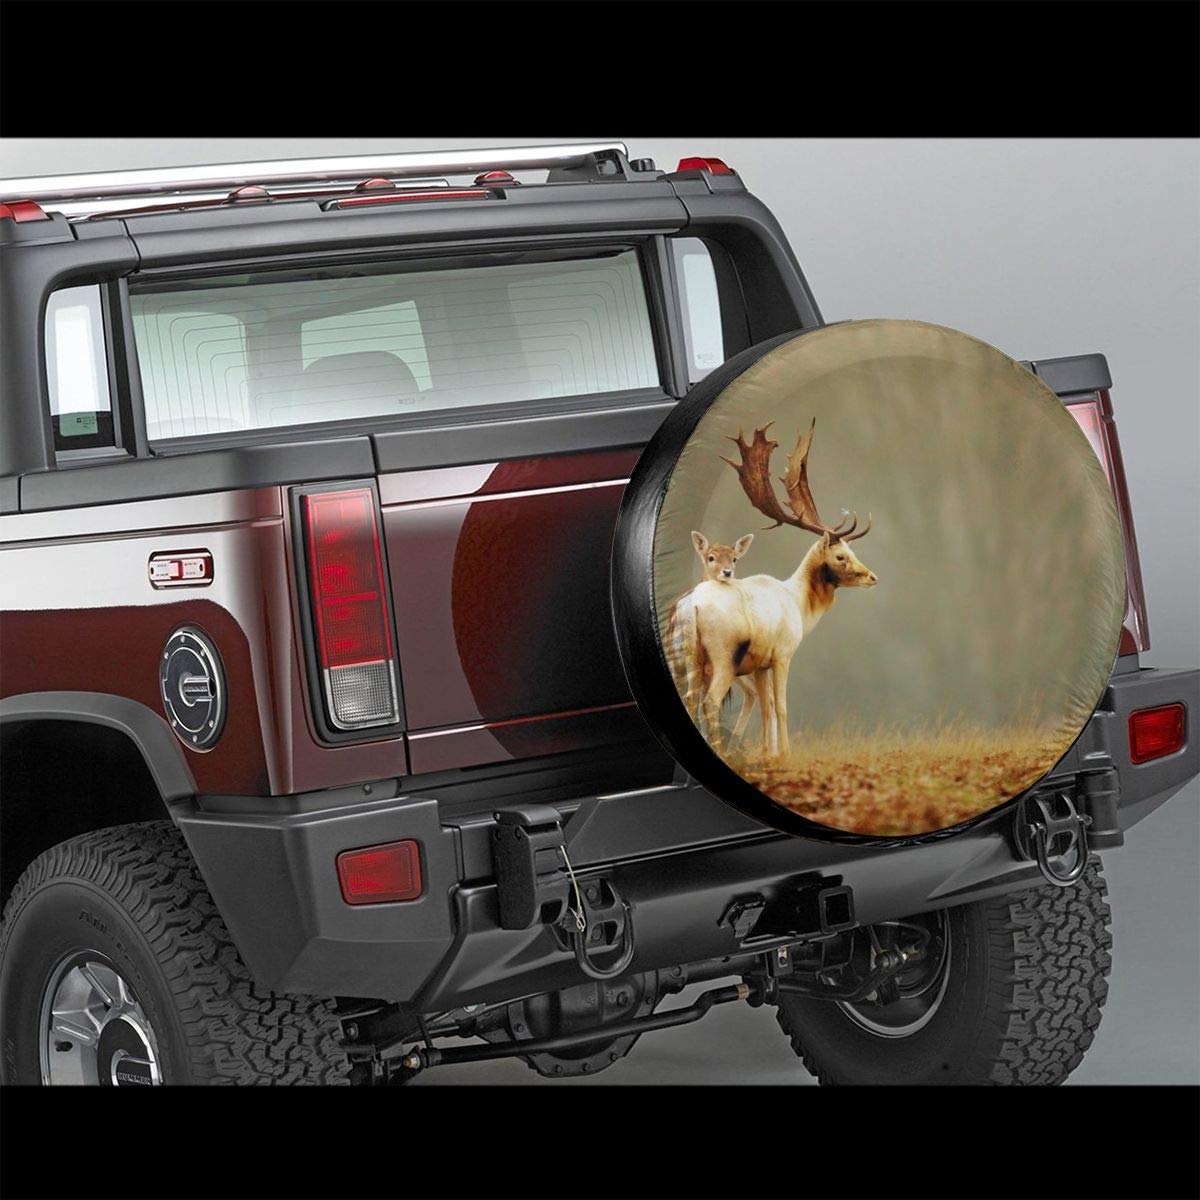 PecoStar Beautiful Deers Camping Potable Polyester Universal Spare Wheel Tire Cover Wheel Covers For Jeep Trailer RV SUV Truck Camper Travel Trailer Accessories